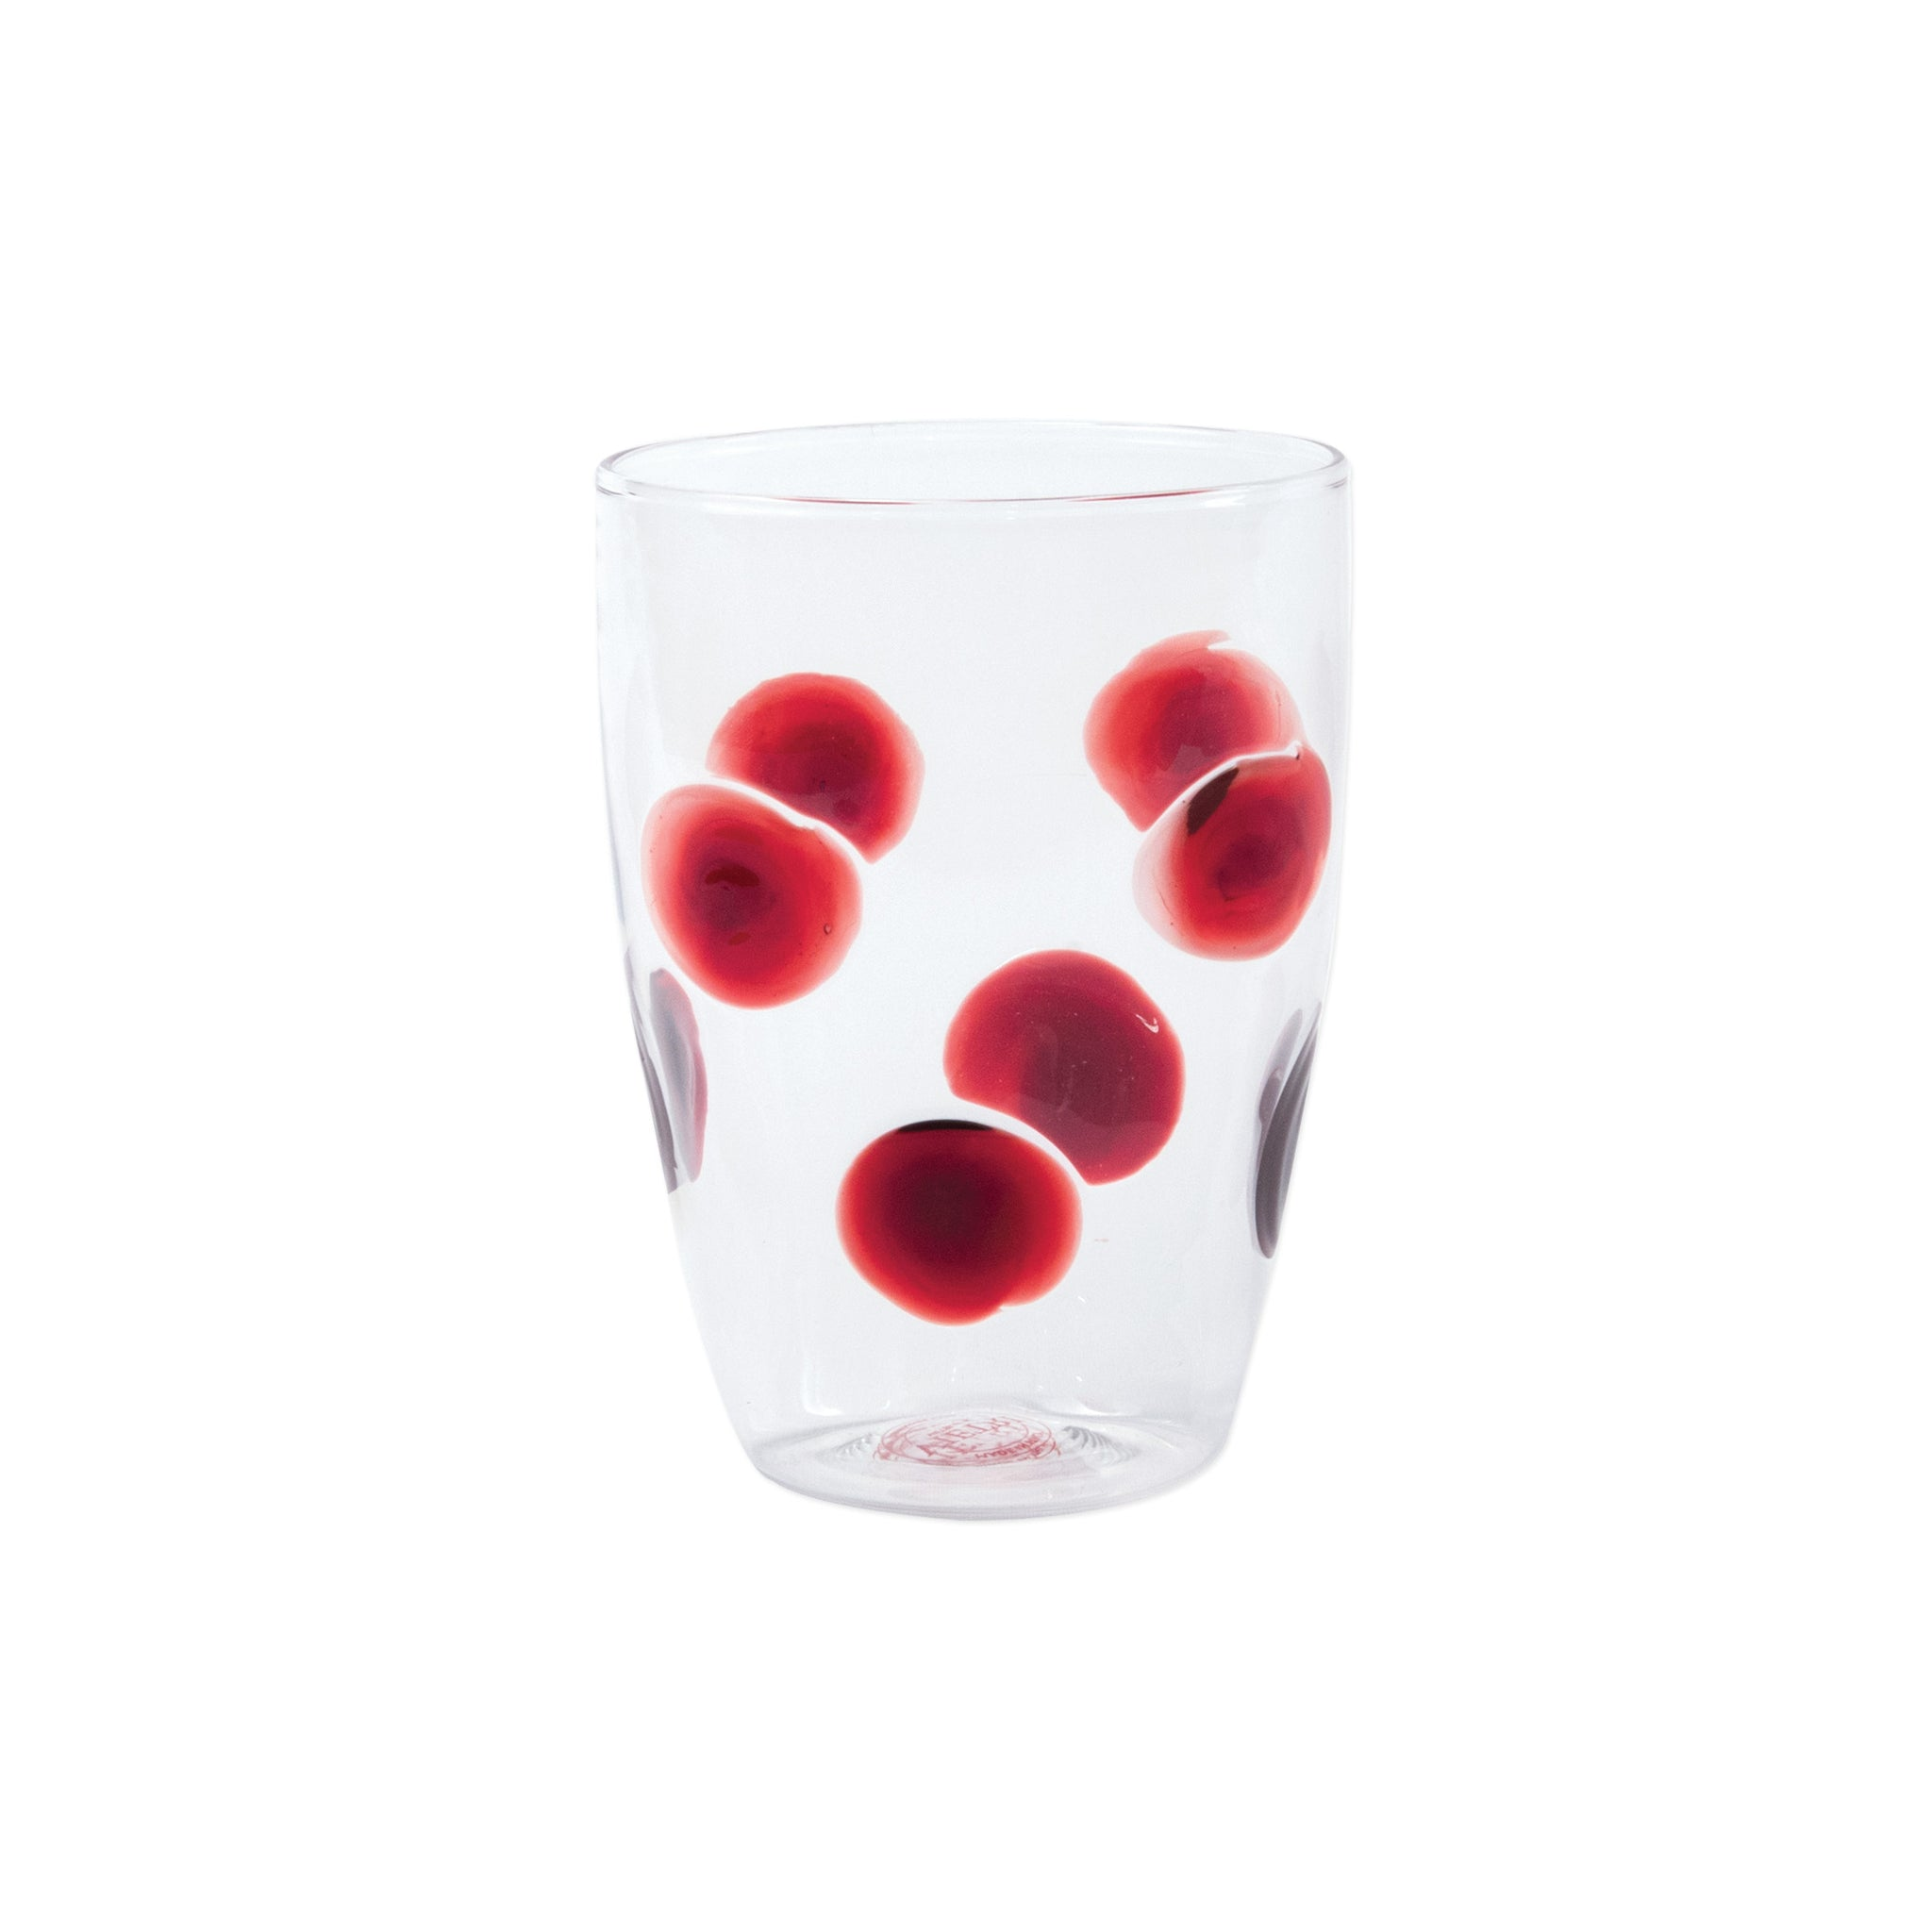 Drop Tall Tumbler - Set of 4 - Red